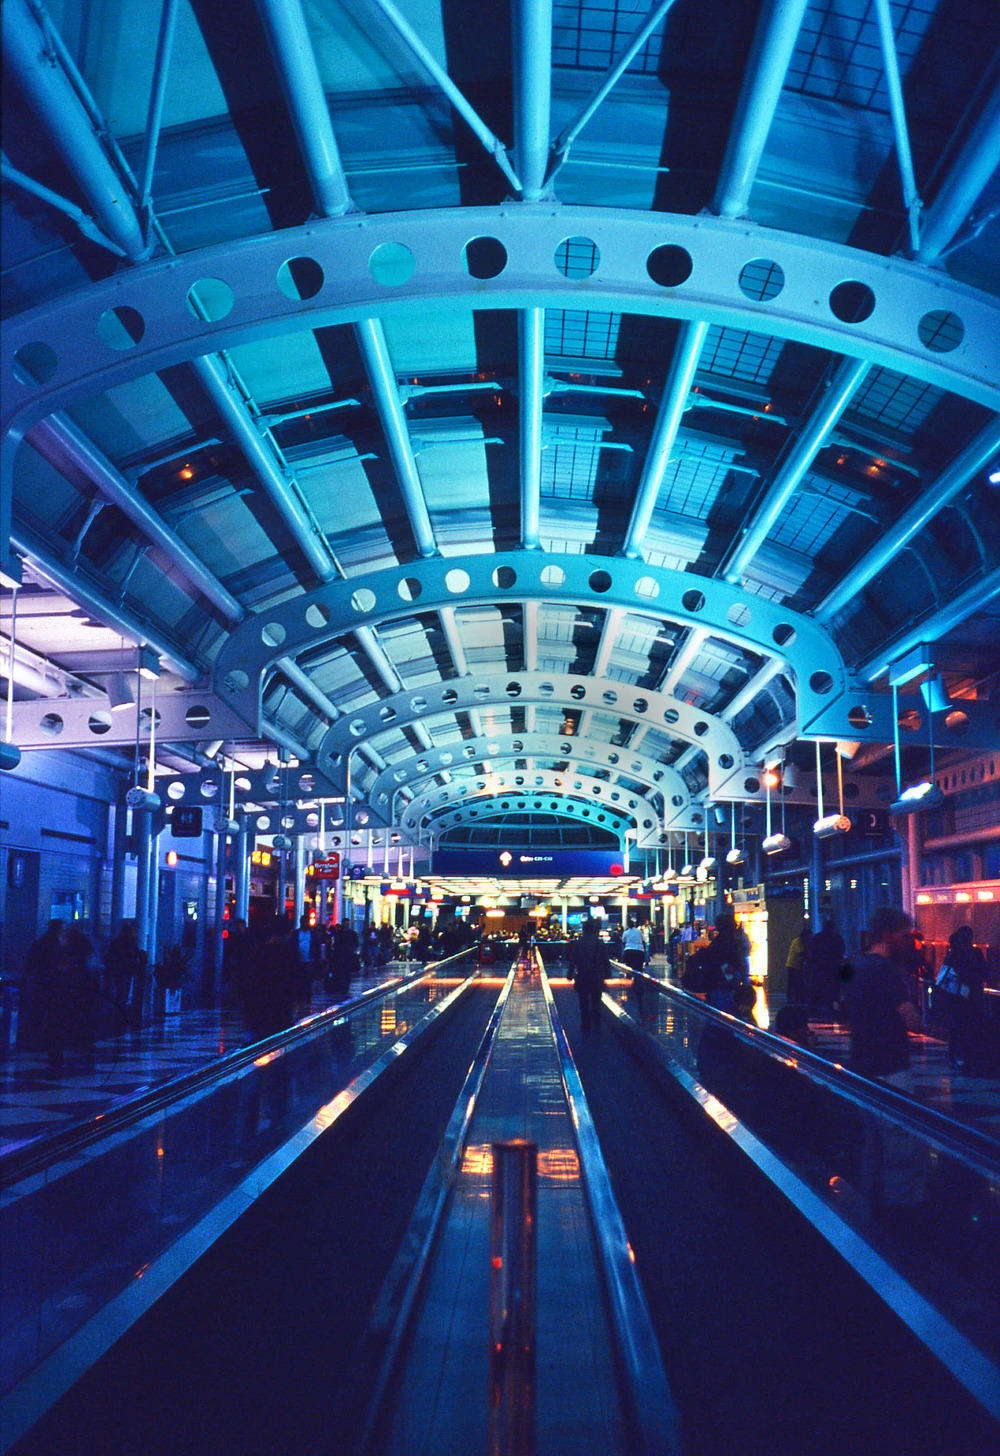 Chicago O'Hare International Airport / Kodak Ektachrome 100VS